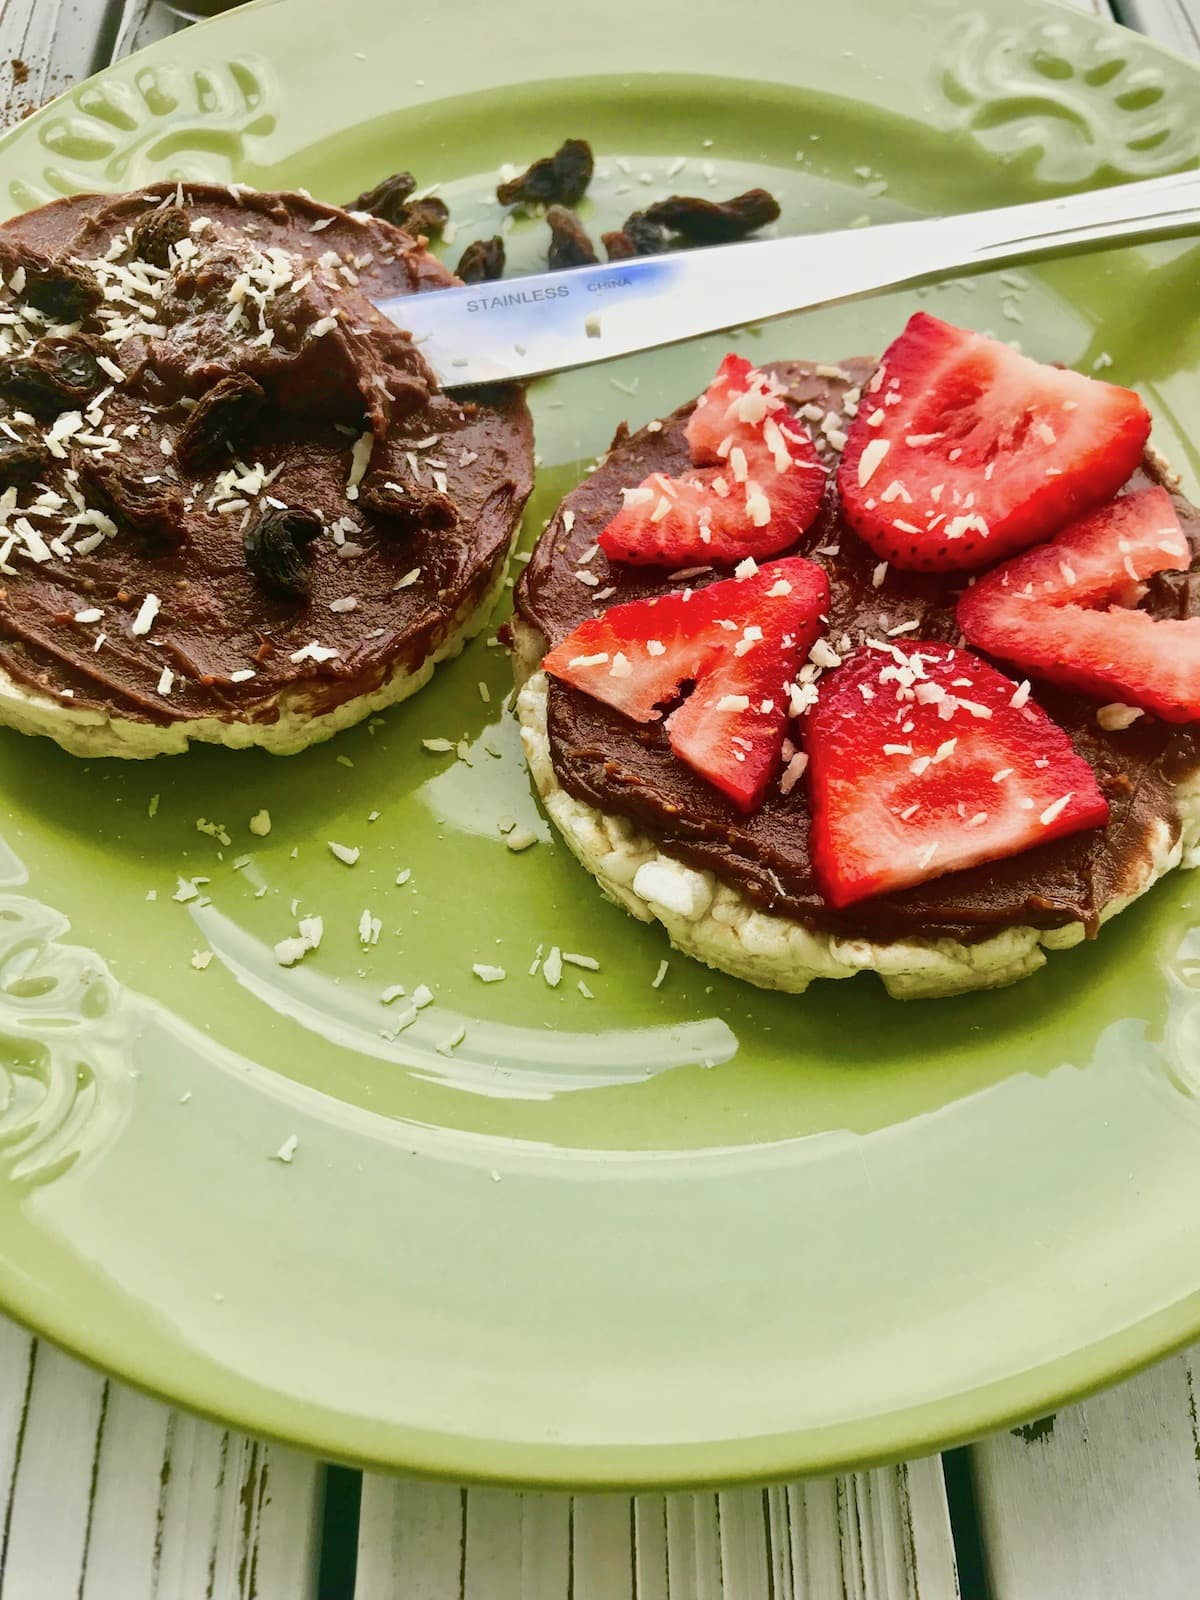 Chocolate peanut butter spread on rice cakes, topped with strawberries, raisins, and coconut flakes.